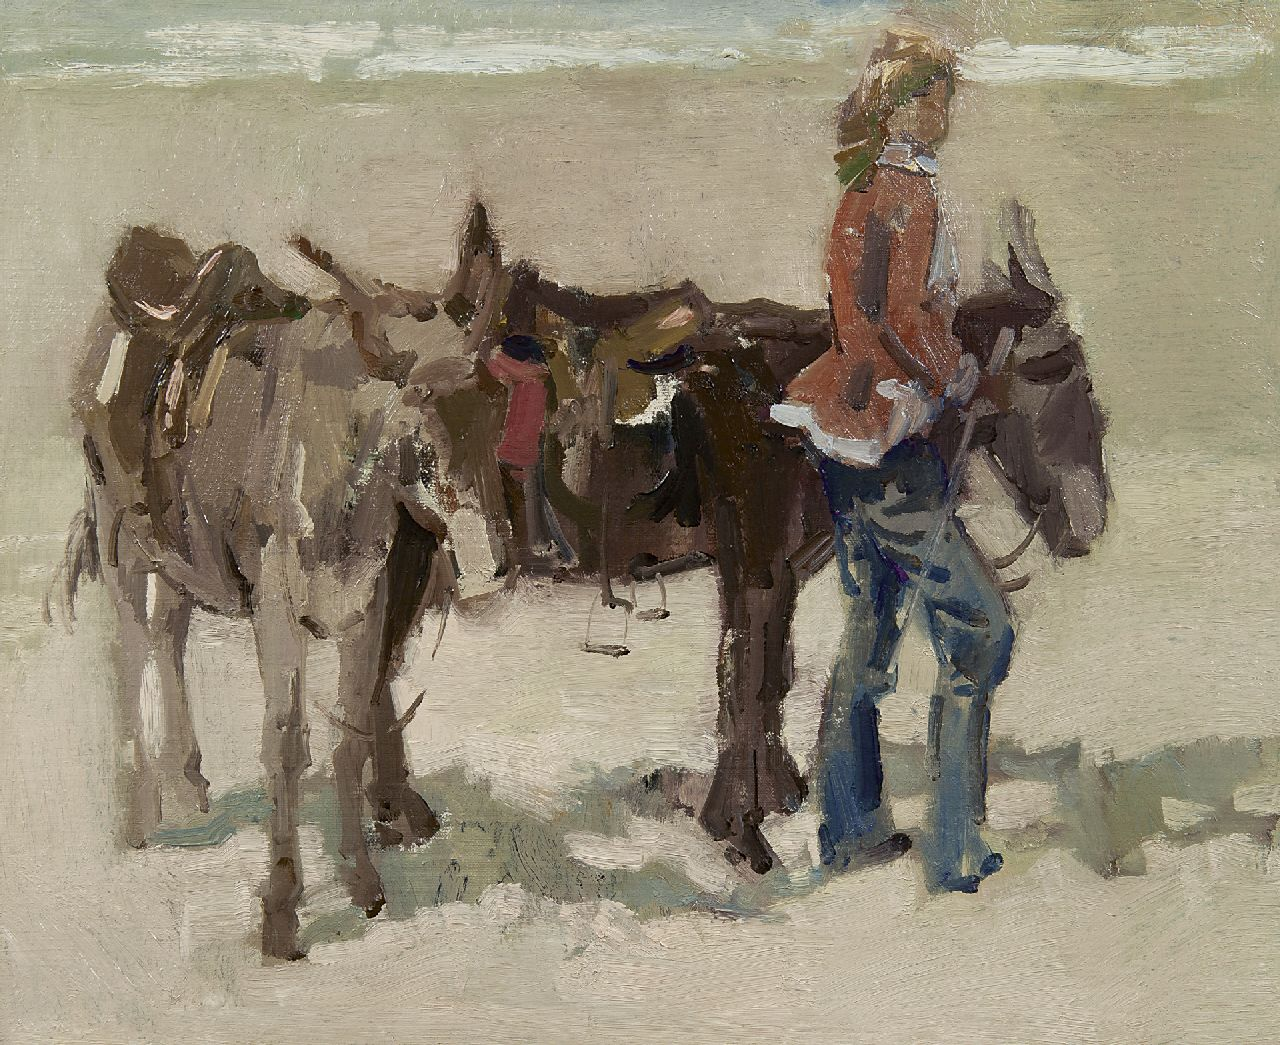 Boer H. de | Hessel de Boer, A girl with donkeys on a beach, oil on canvas 46.0 x 55.8 cm